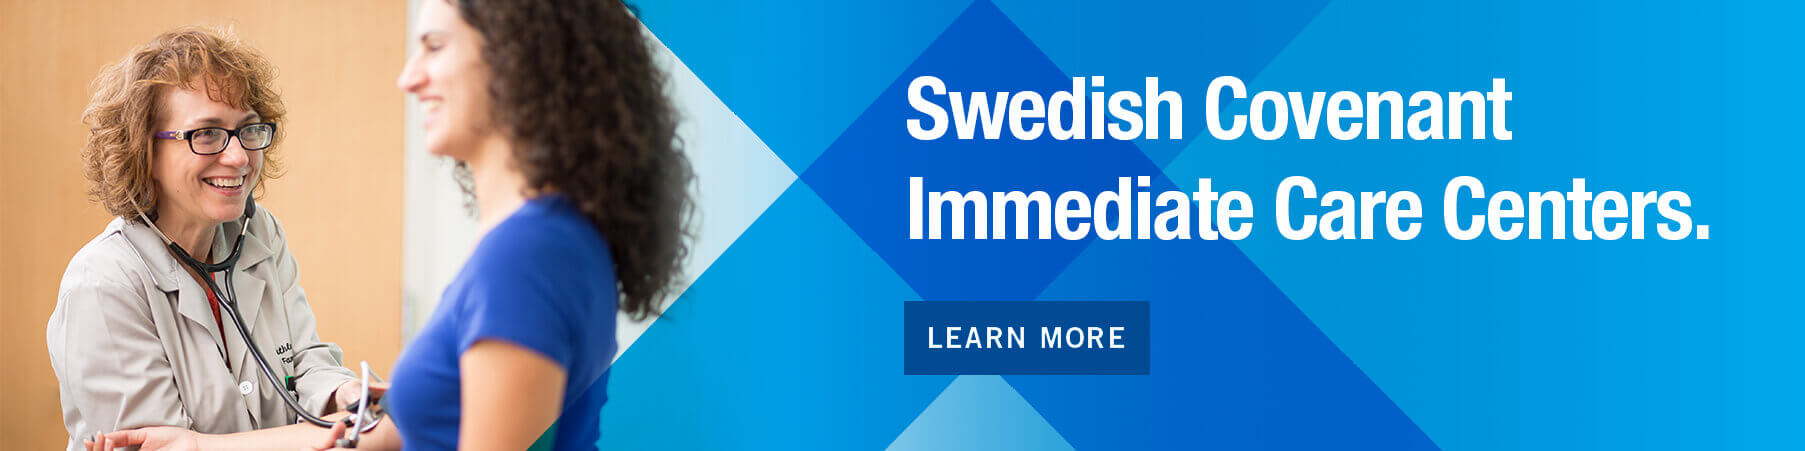 Swedish Covenant Immediate Care Centers